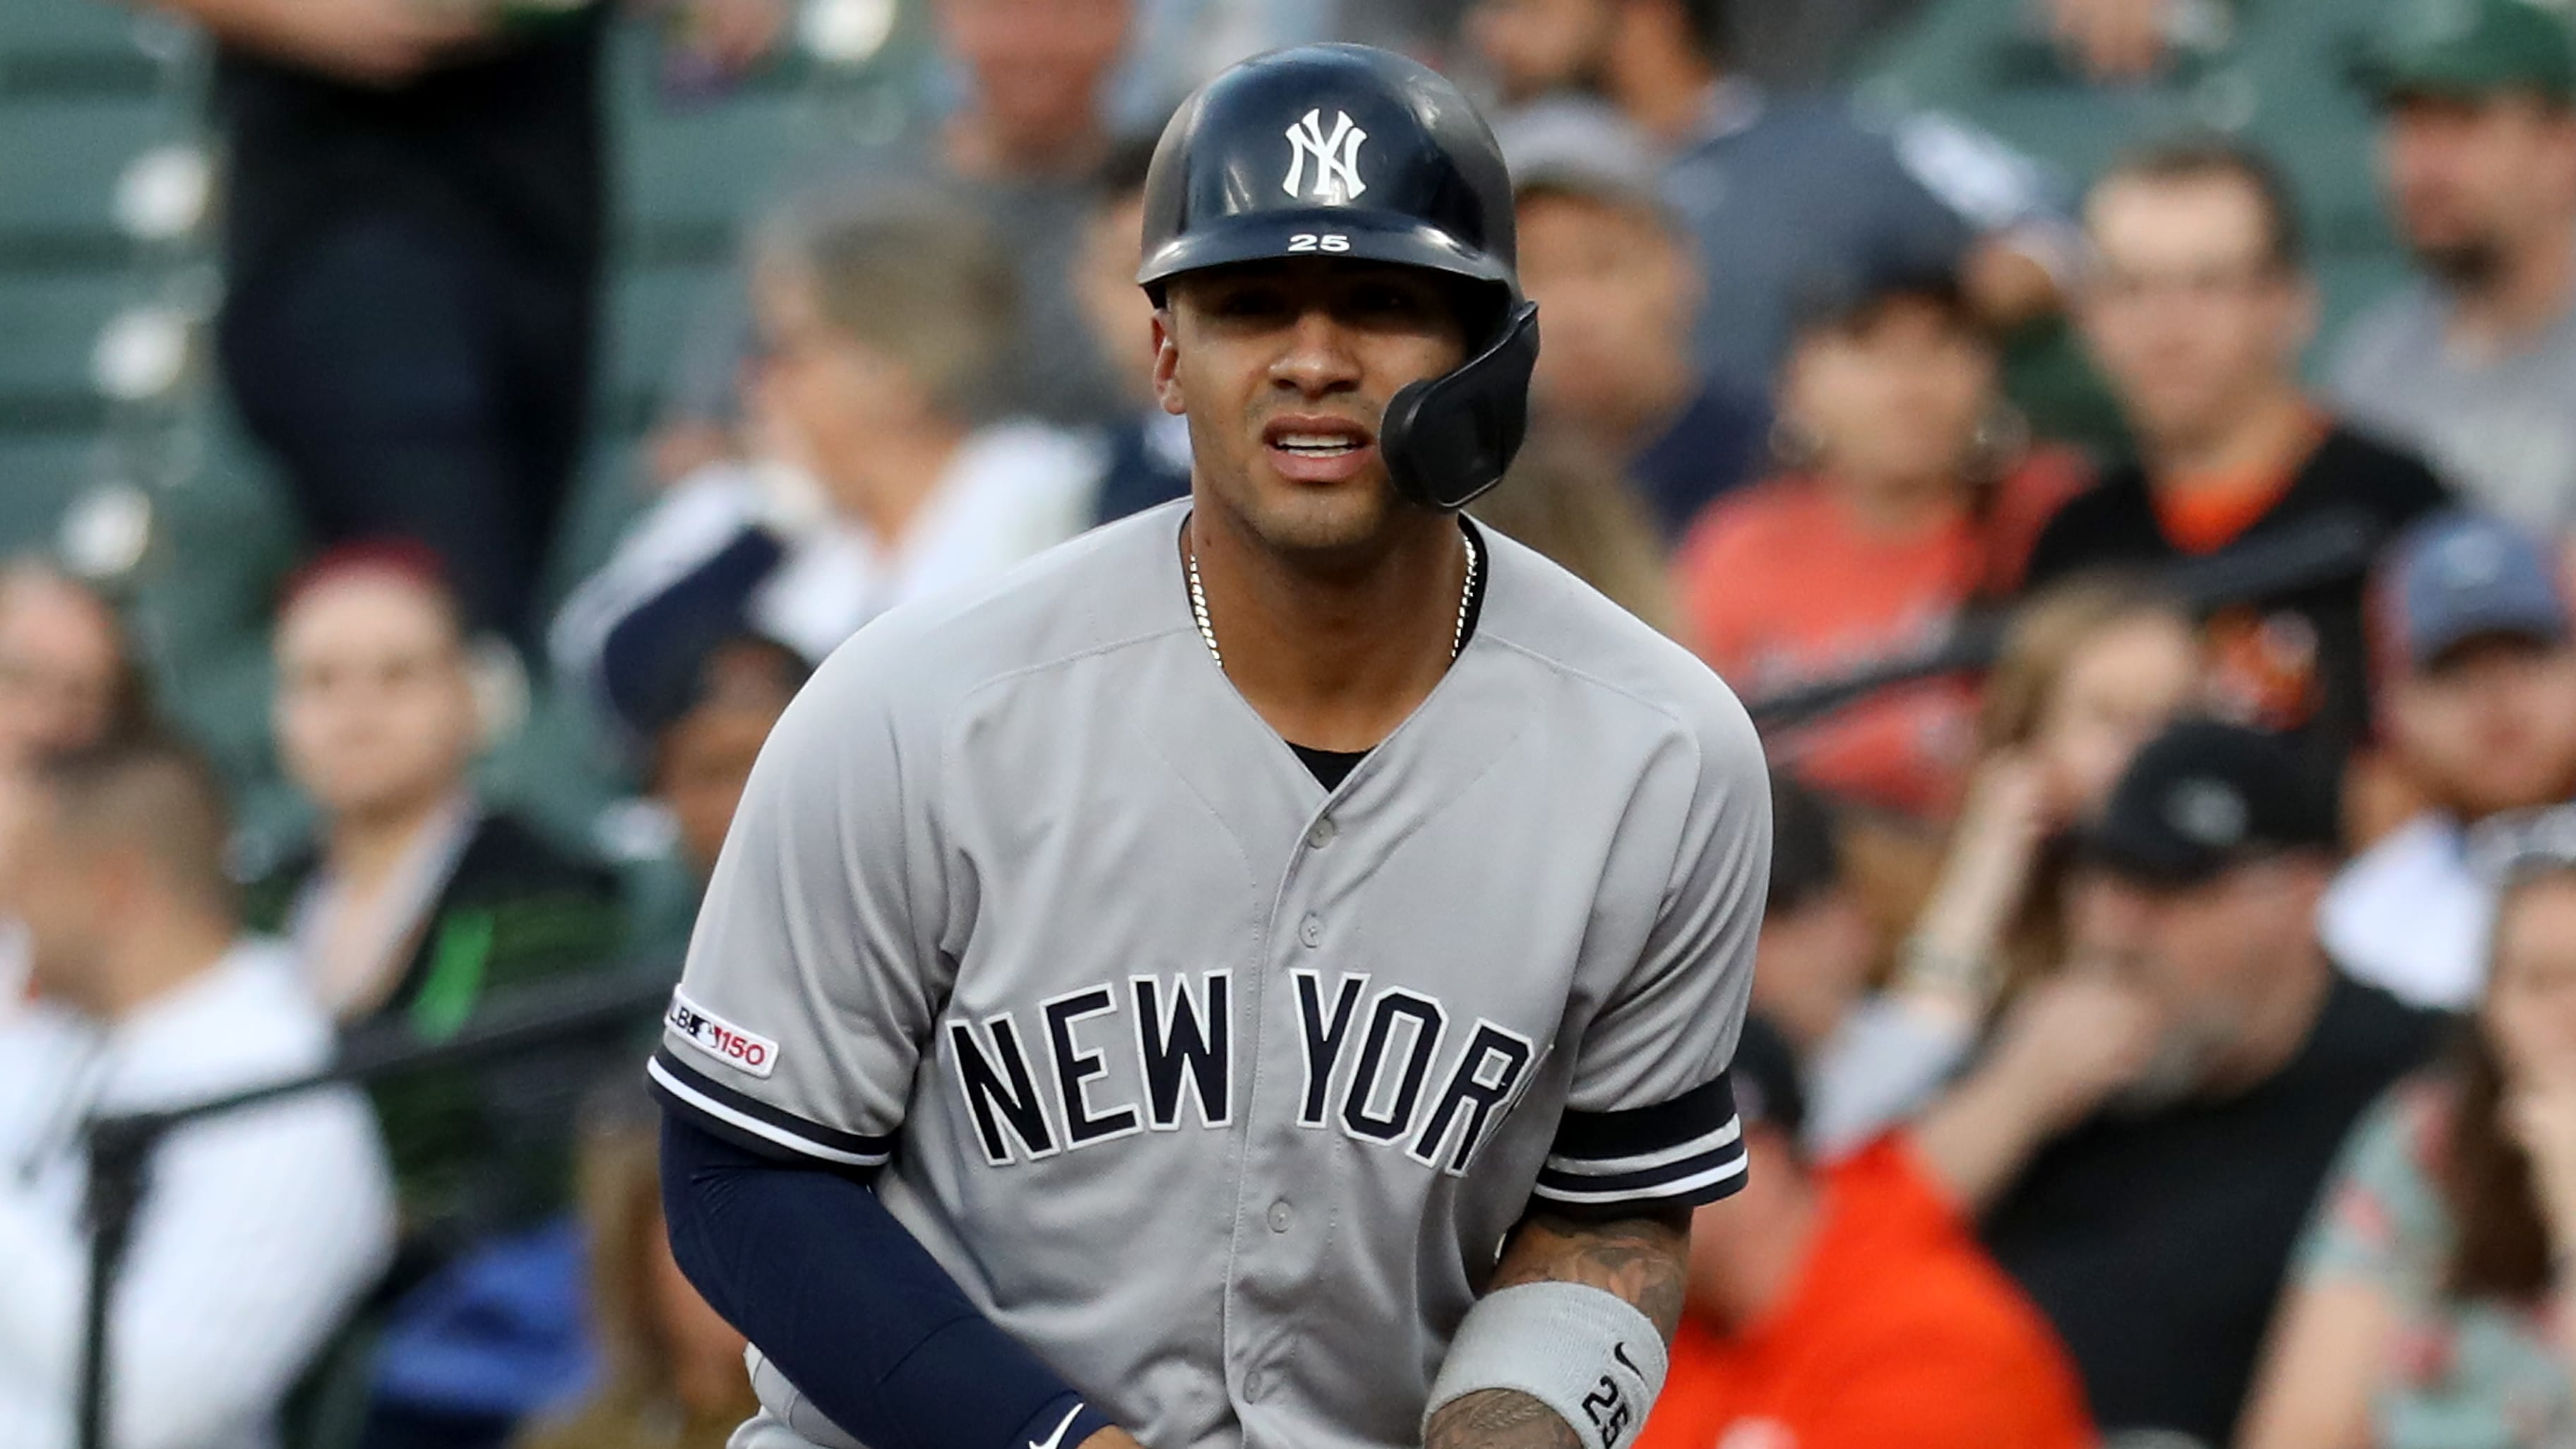 BALTIMORE, MARYLAND - MAY 21: Gleyber Torres #25 of the New York Yankees leads off of first base against the Baltimore Orioles at Oriole Park at Camden Yards on May 21, 2019 in Baltimore, Maryland. (Photo by Rob Carr/Getty Images)